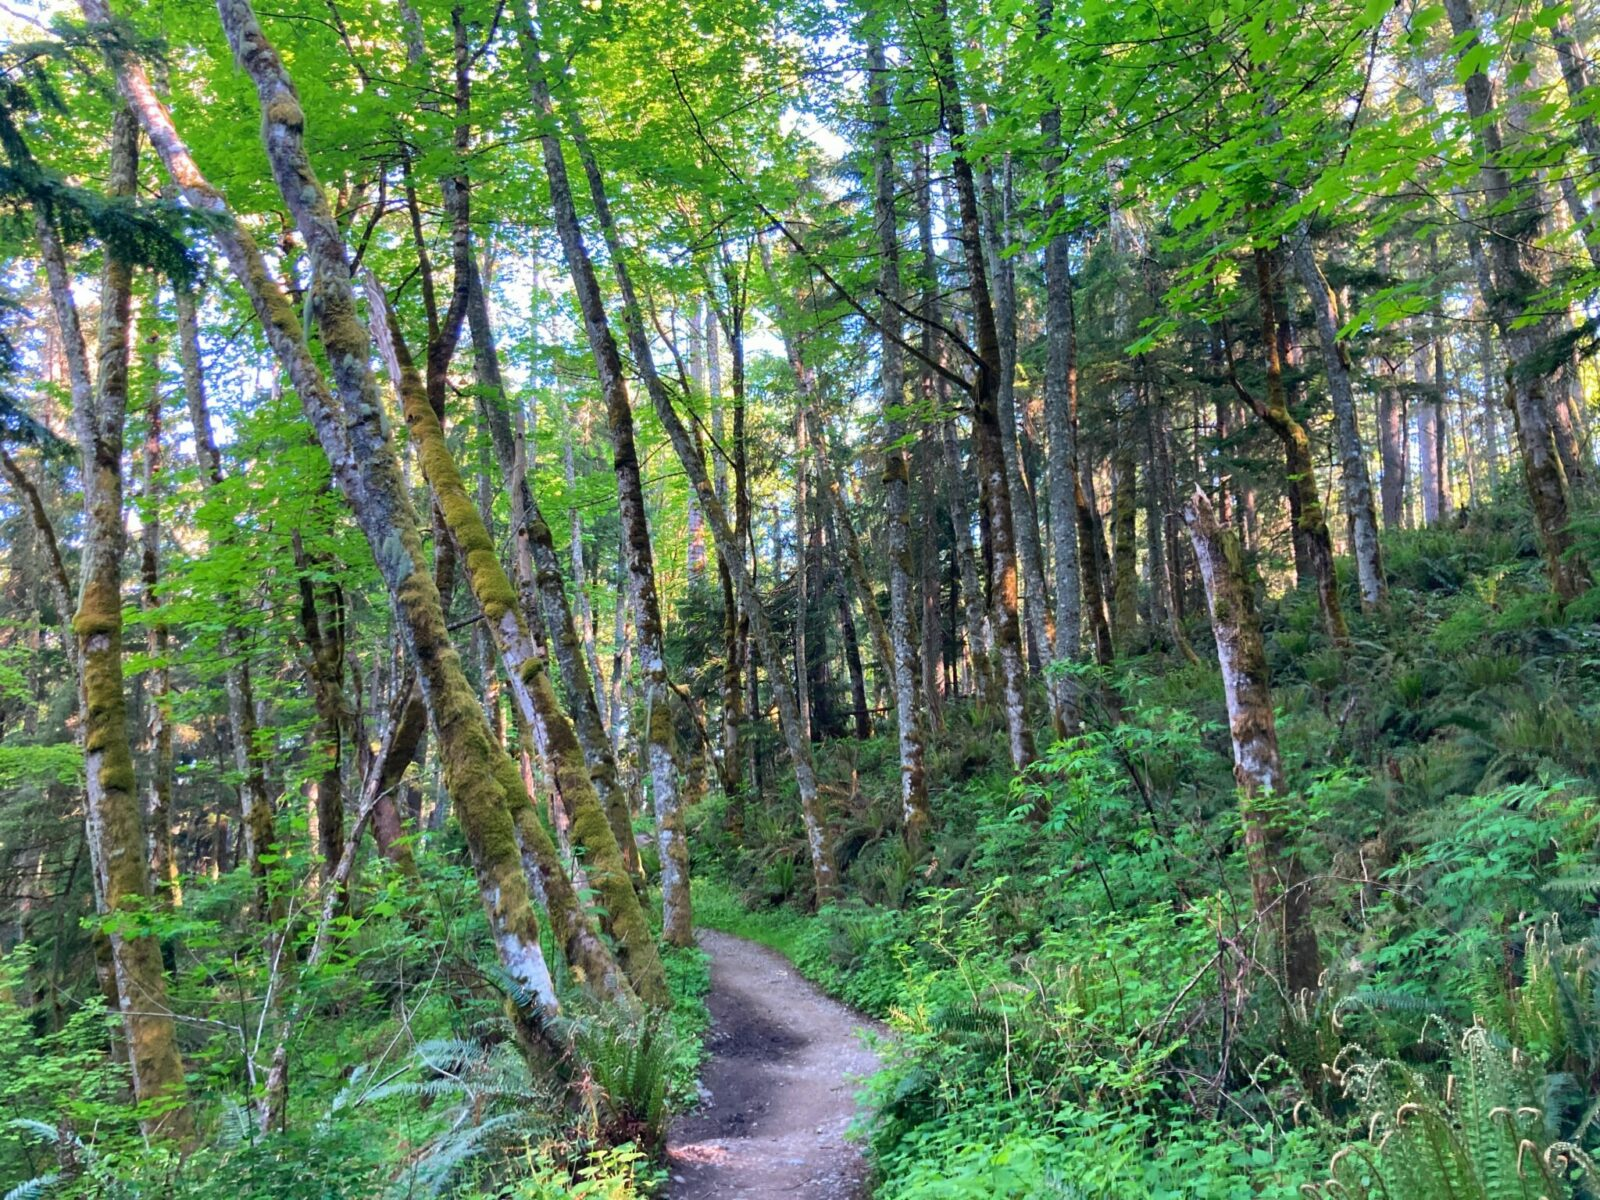 A dirt trail winds through a forested hillside with trees, shrubs, bushes and ferns in every shade of green.